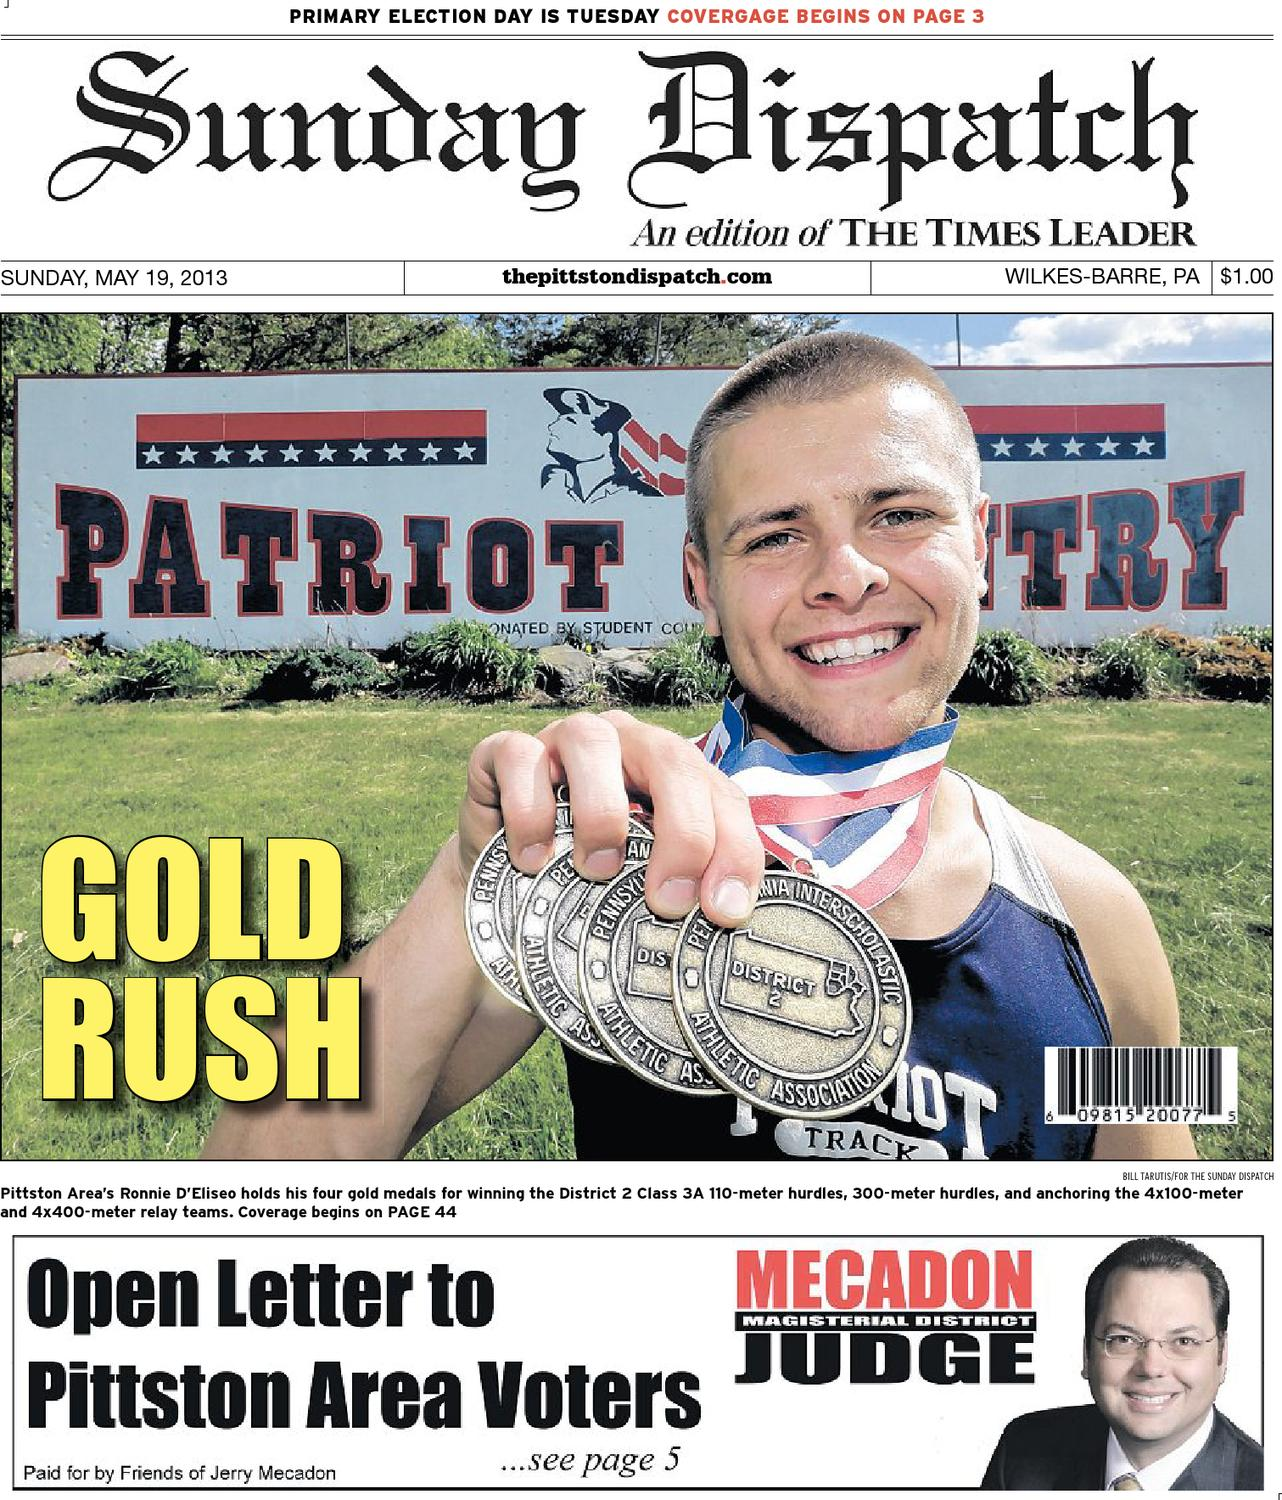 The Pittston Dispatch 05 19 2013 By Wilkes Barre Publishing Locklock Fridge Door Jug 11l Abf732 Company Issuu